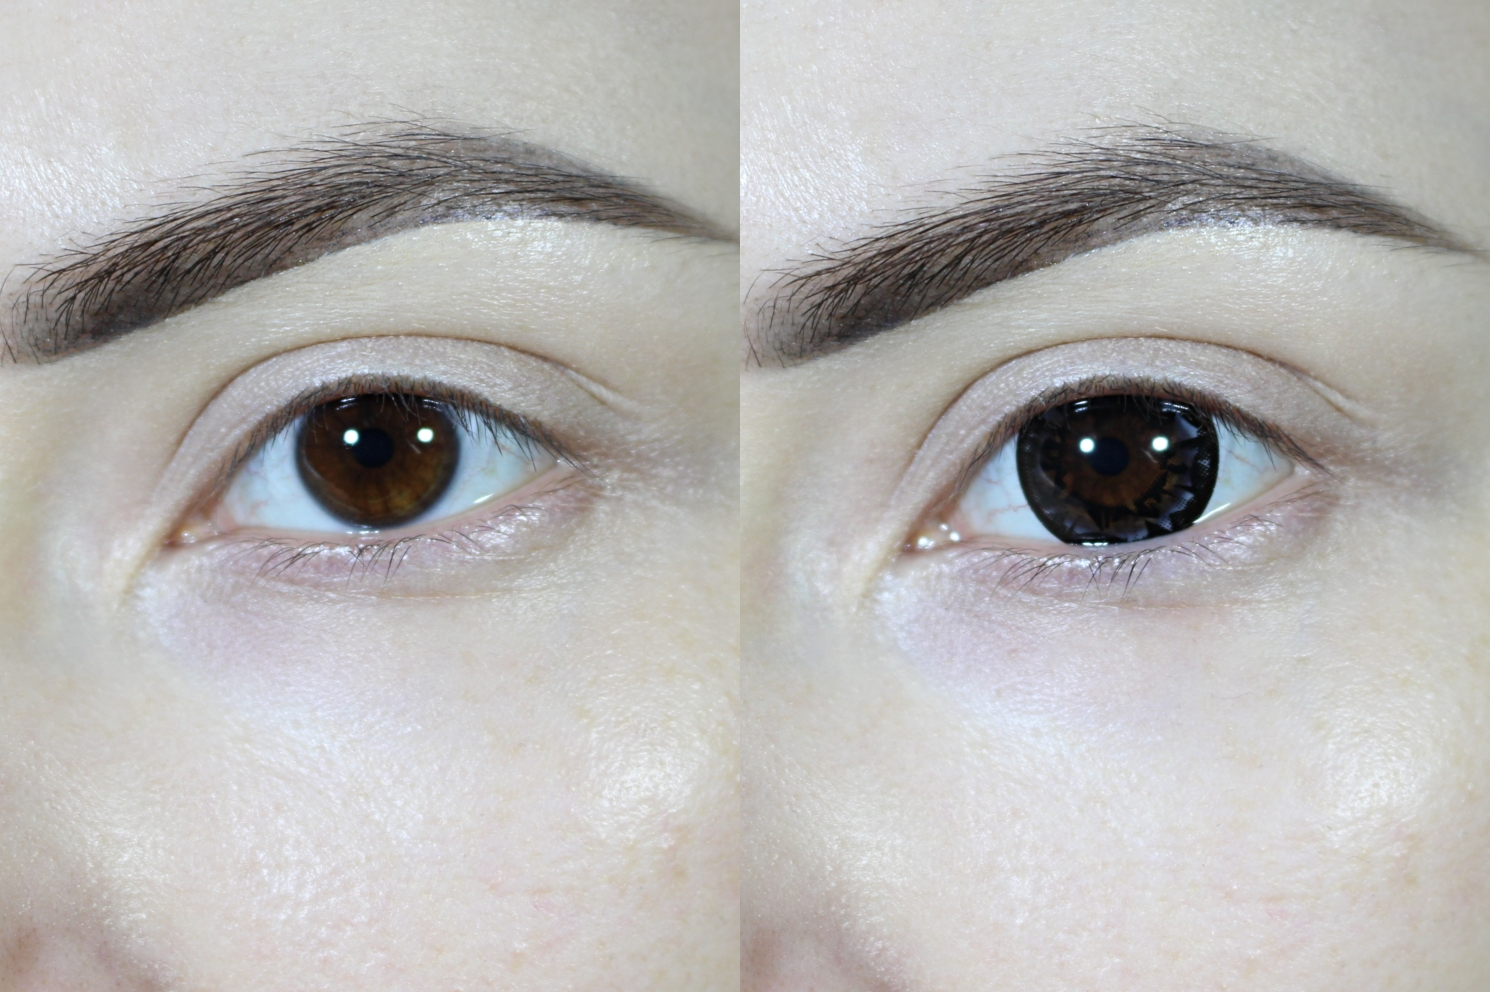 eye enlarging black diamond circle lenses before and after demonstration